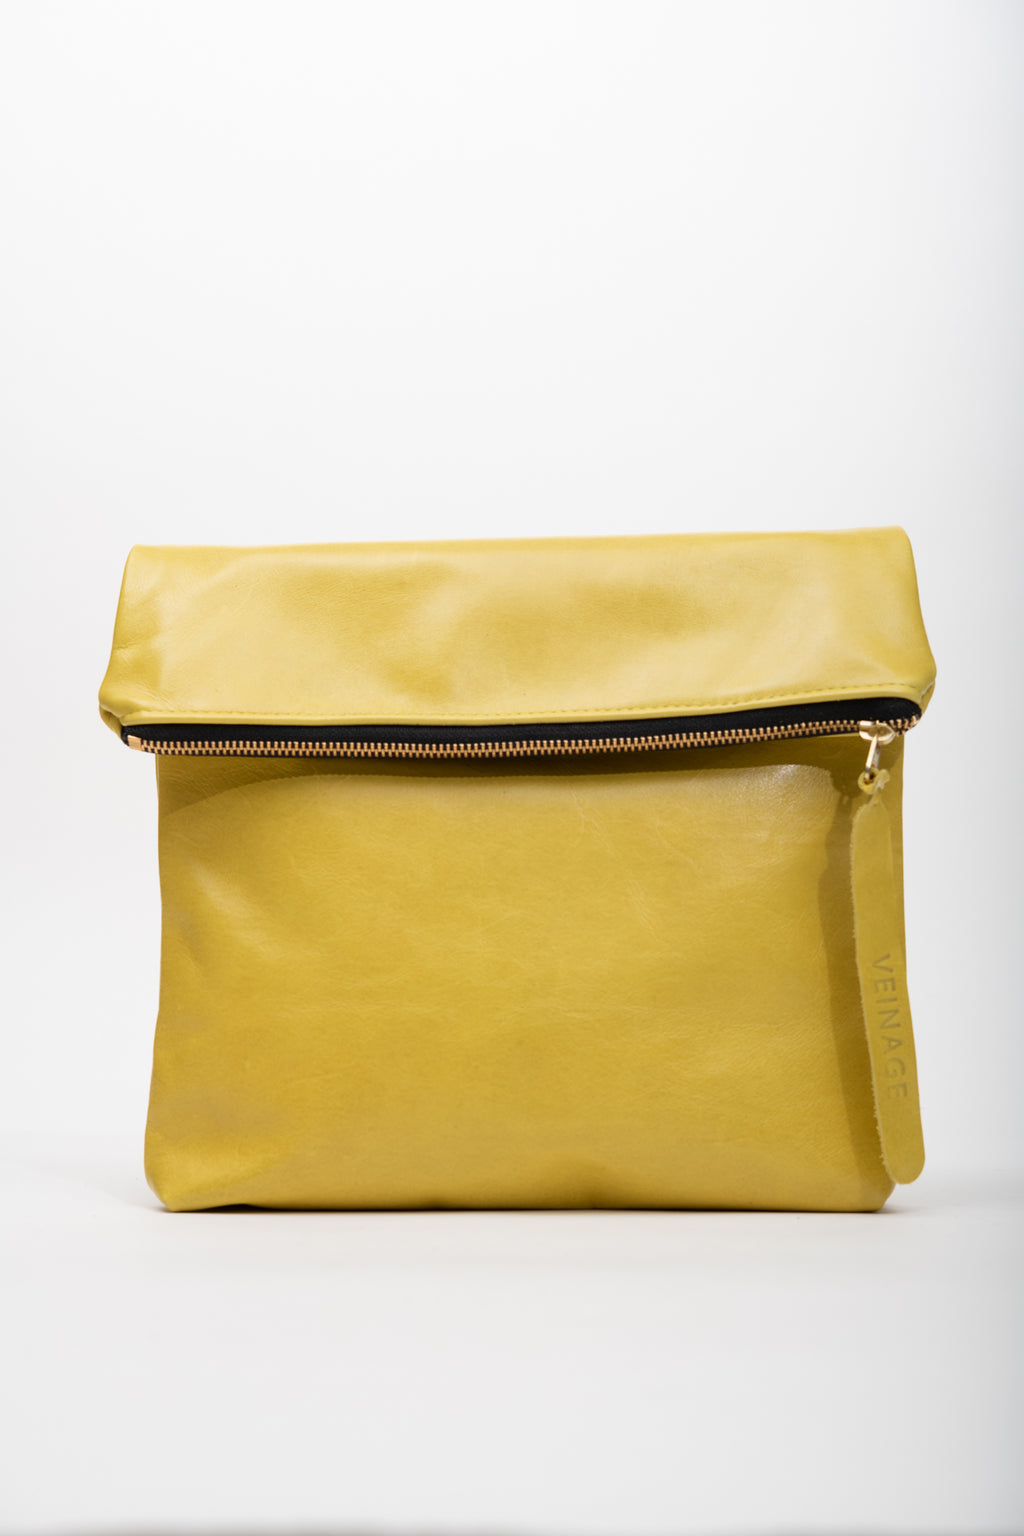 Veinage Yellow leather clutch bag with crossbody strap BORDEAUX model